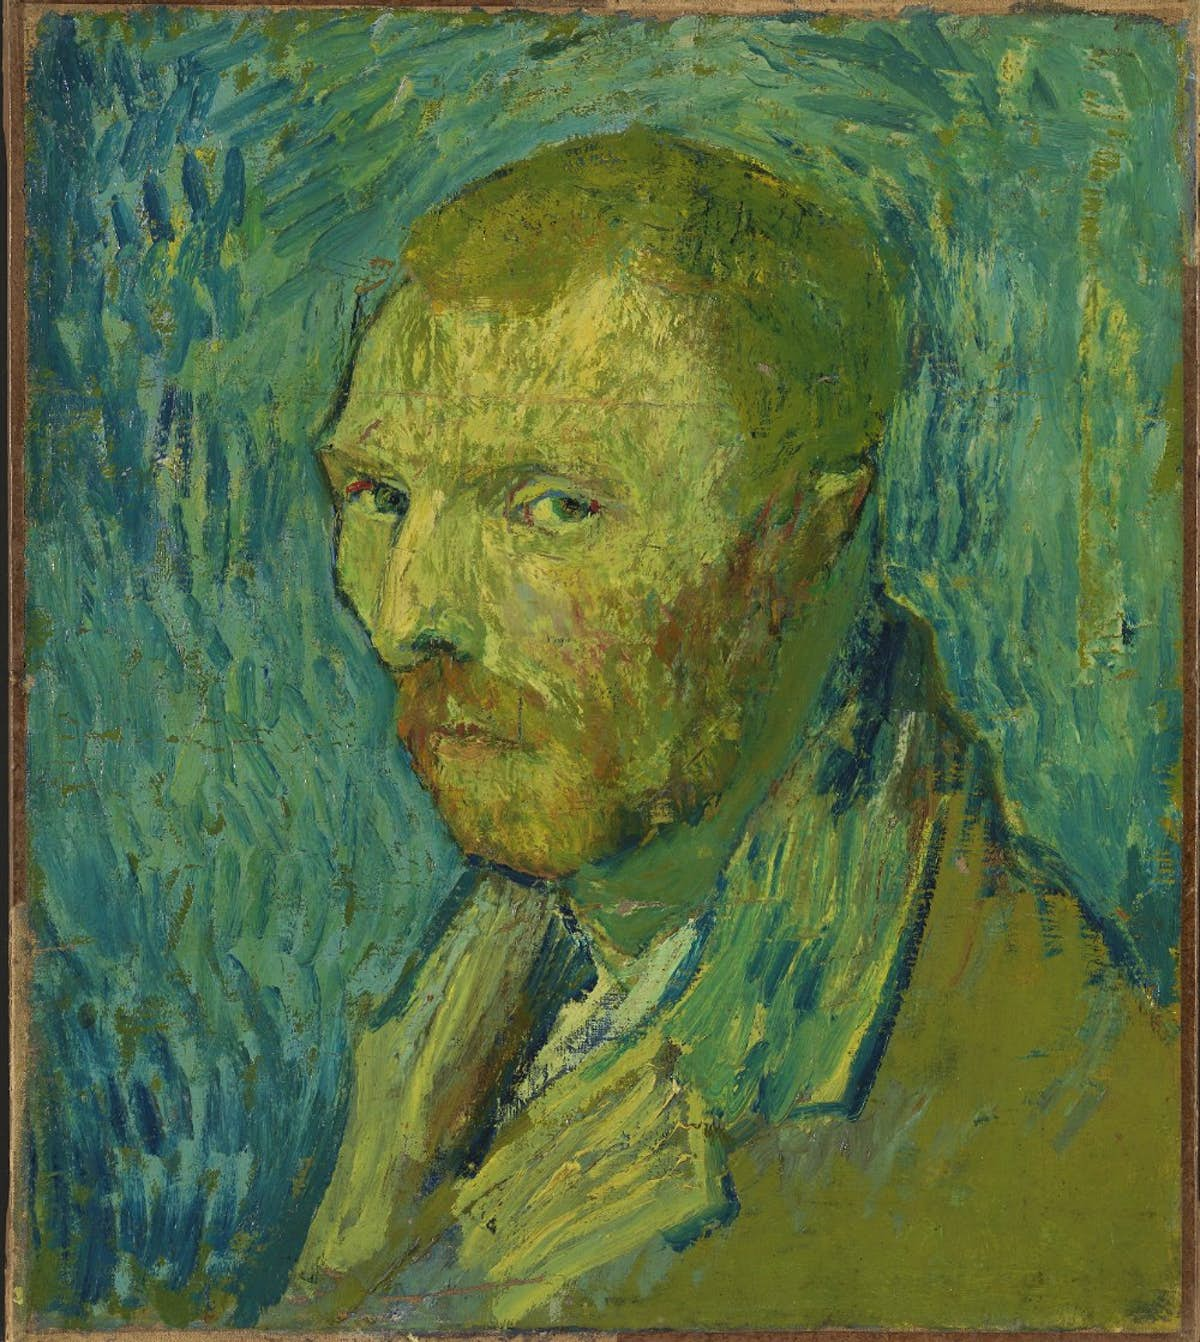 Van Gogh's contested self-portrait has been confirmed as authentic - Lonely Planet